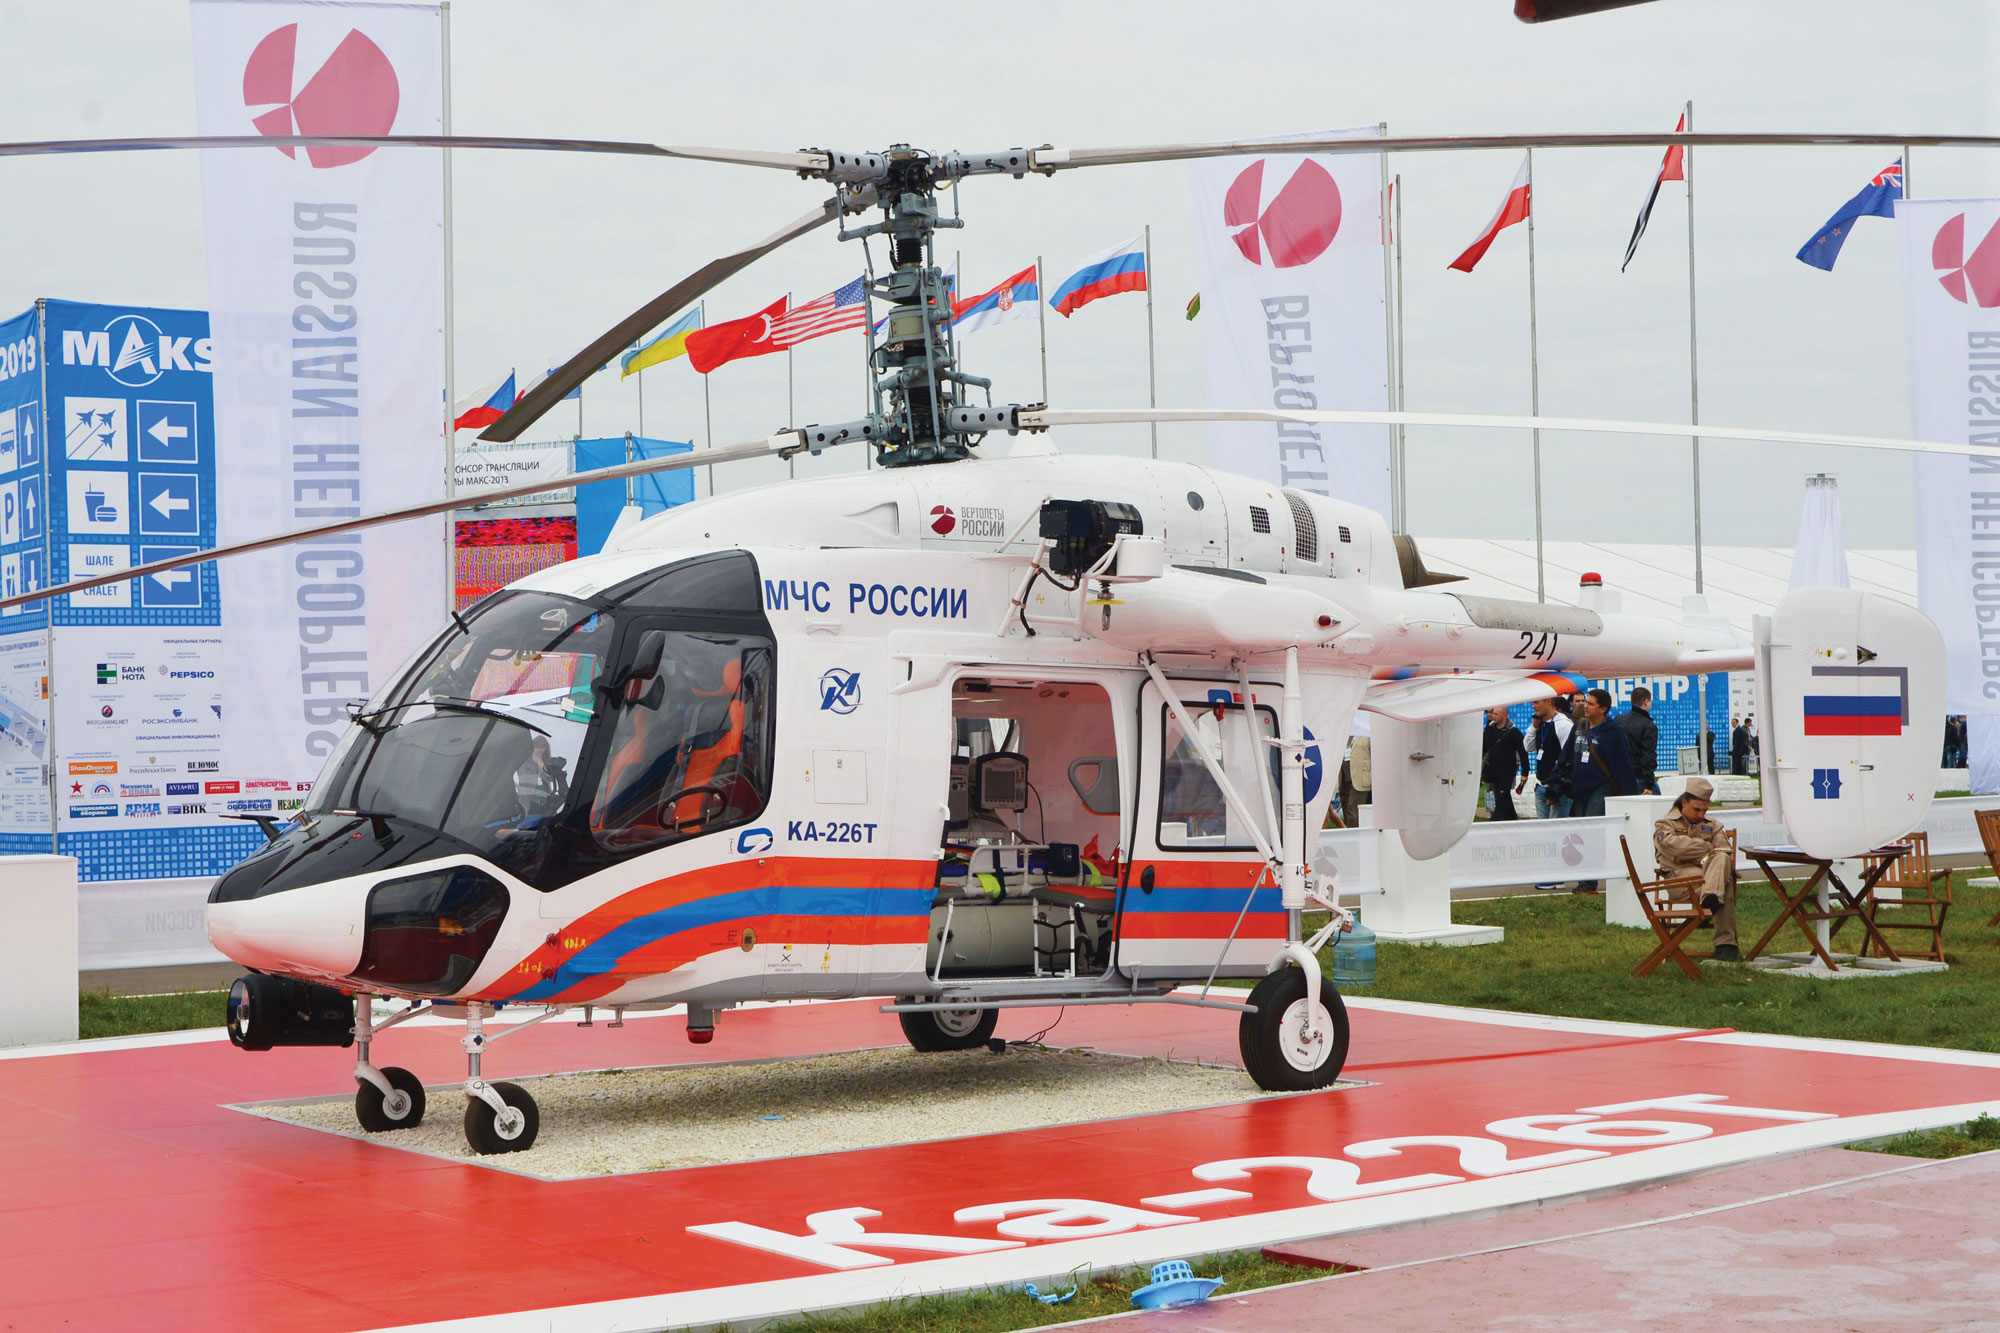 France-based Companies Win and Lose in Big Indian Helo Contest